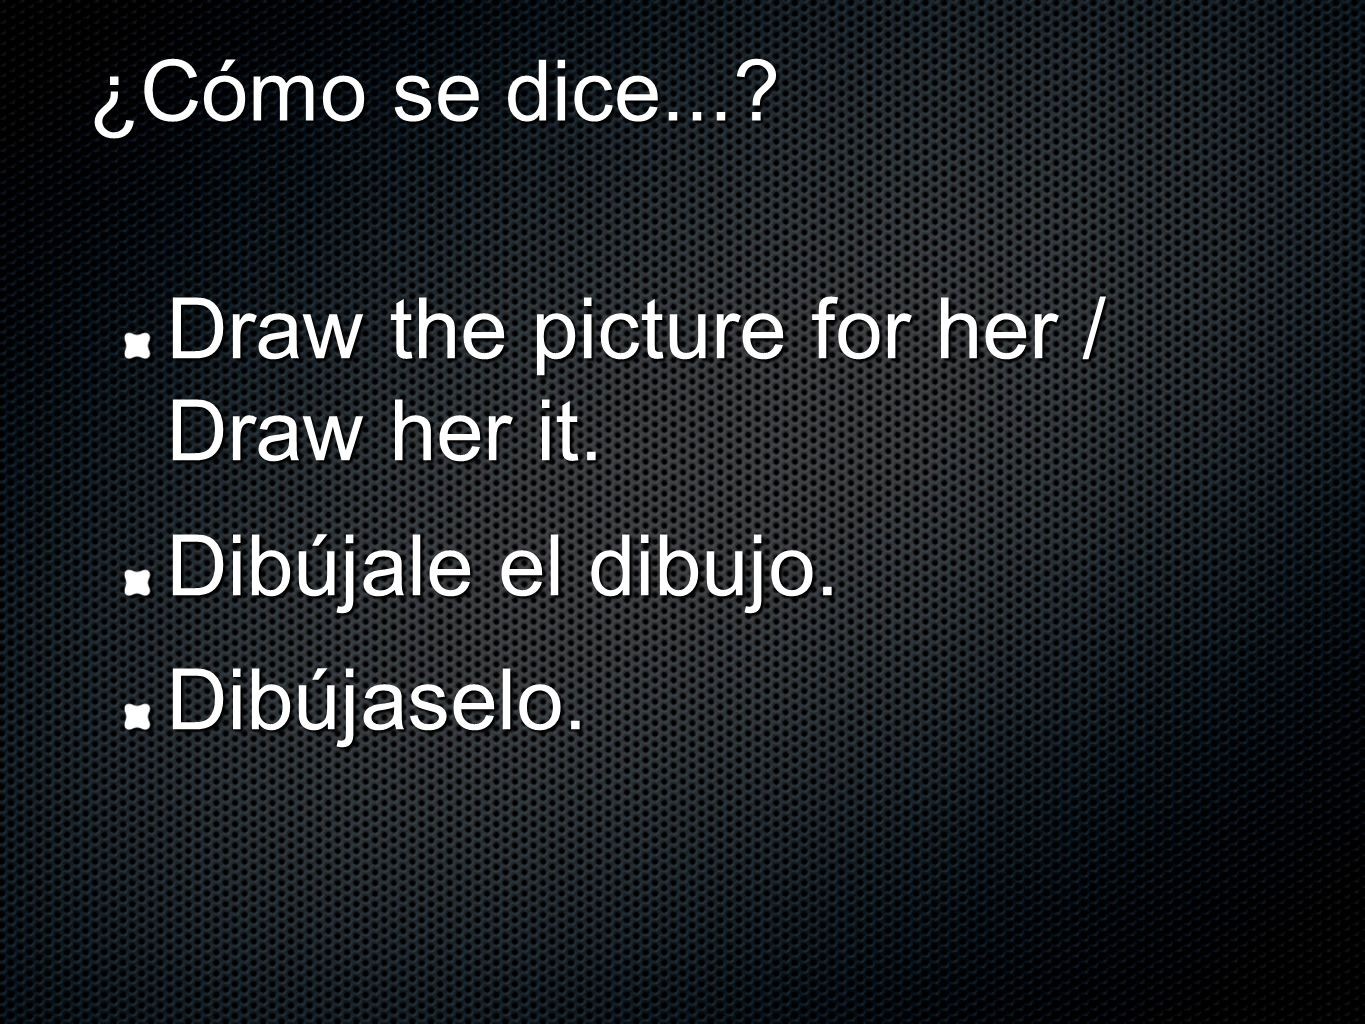 ¿Cómo se dice...? Draw the picture for her / Draw her it. Dibújale el dibujo. Dibújaselo.